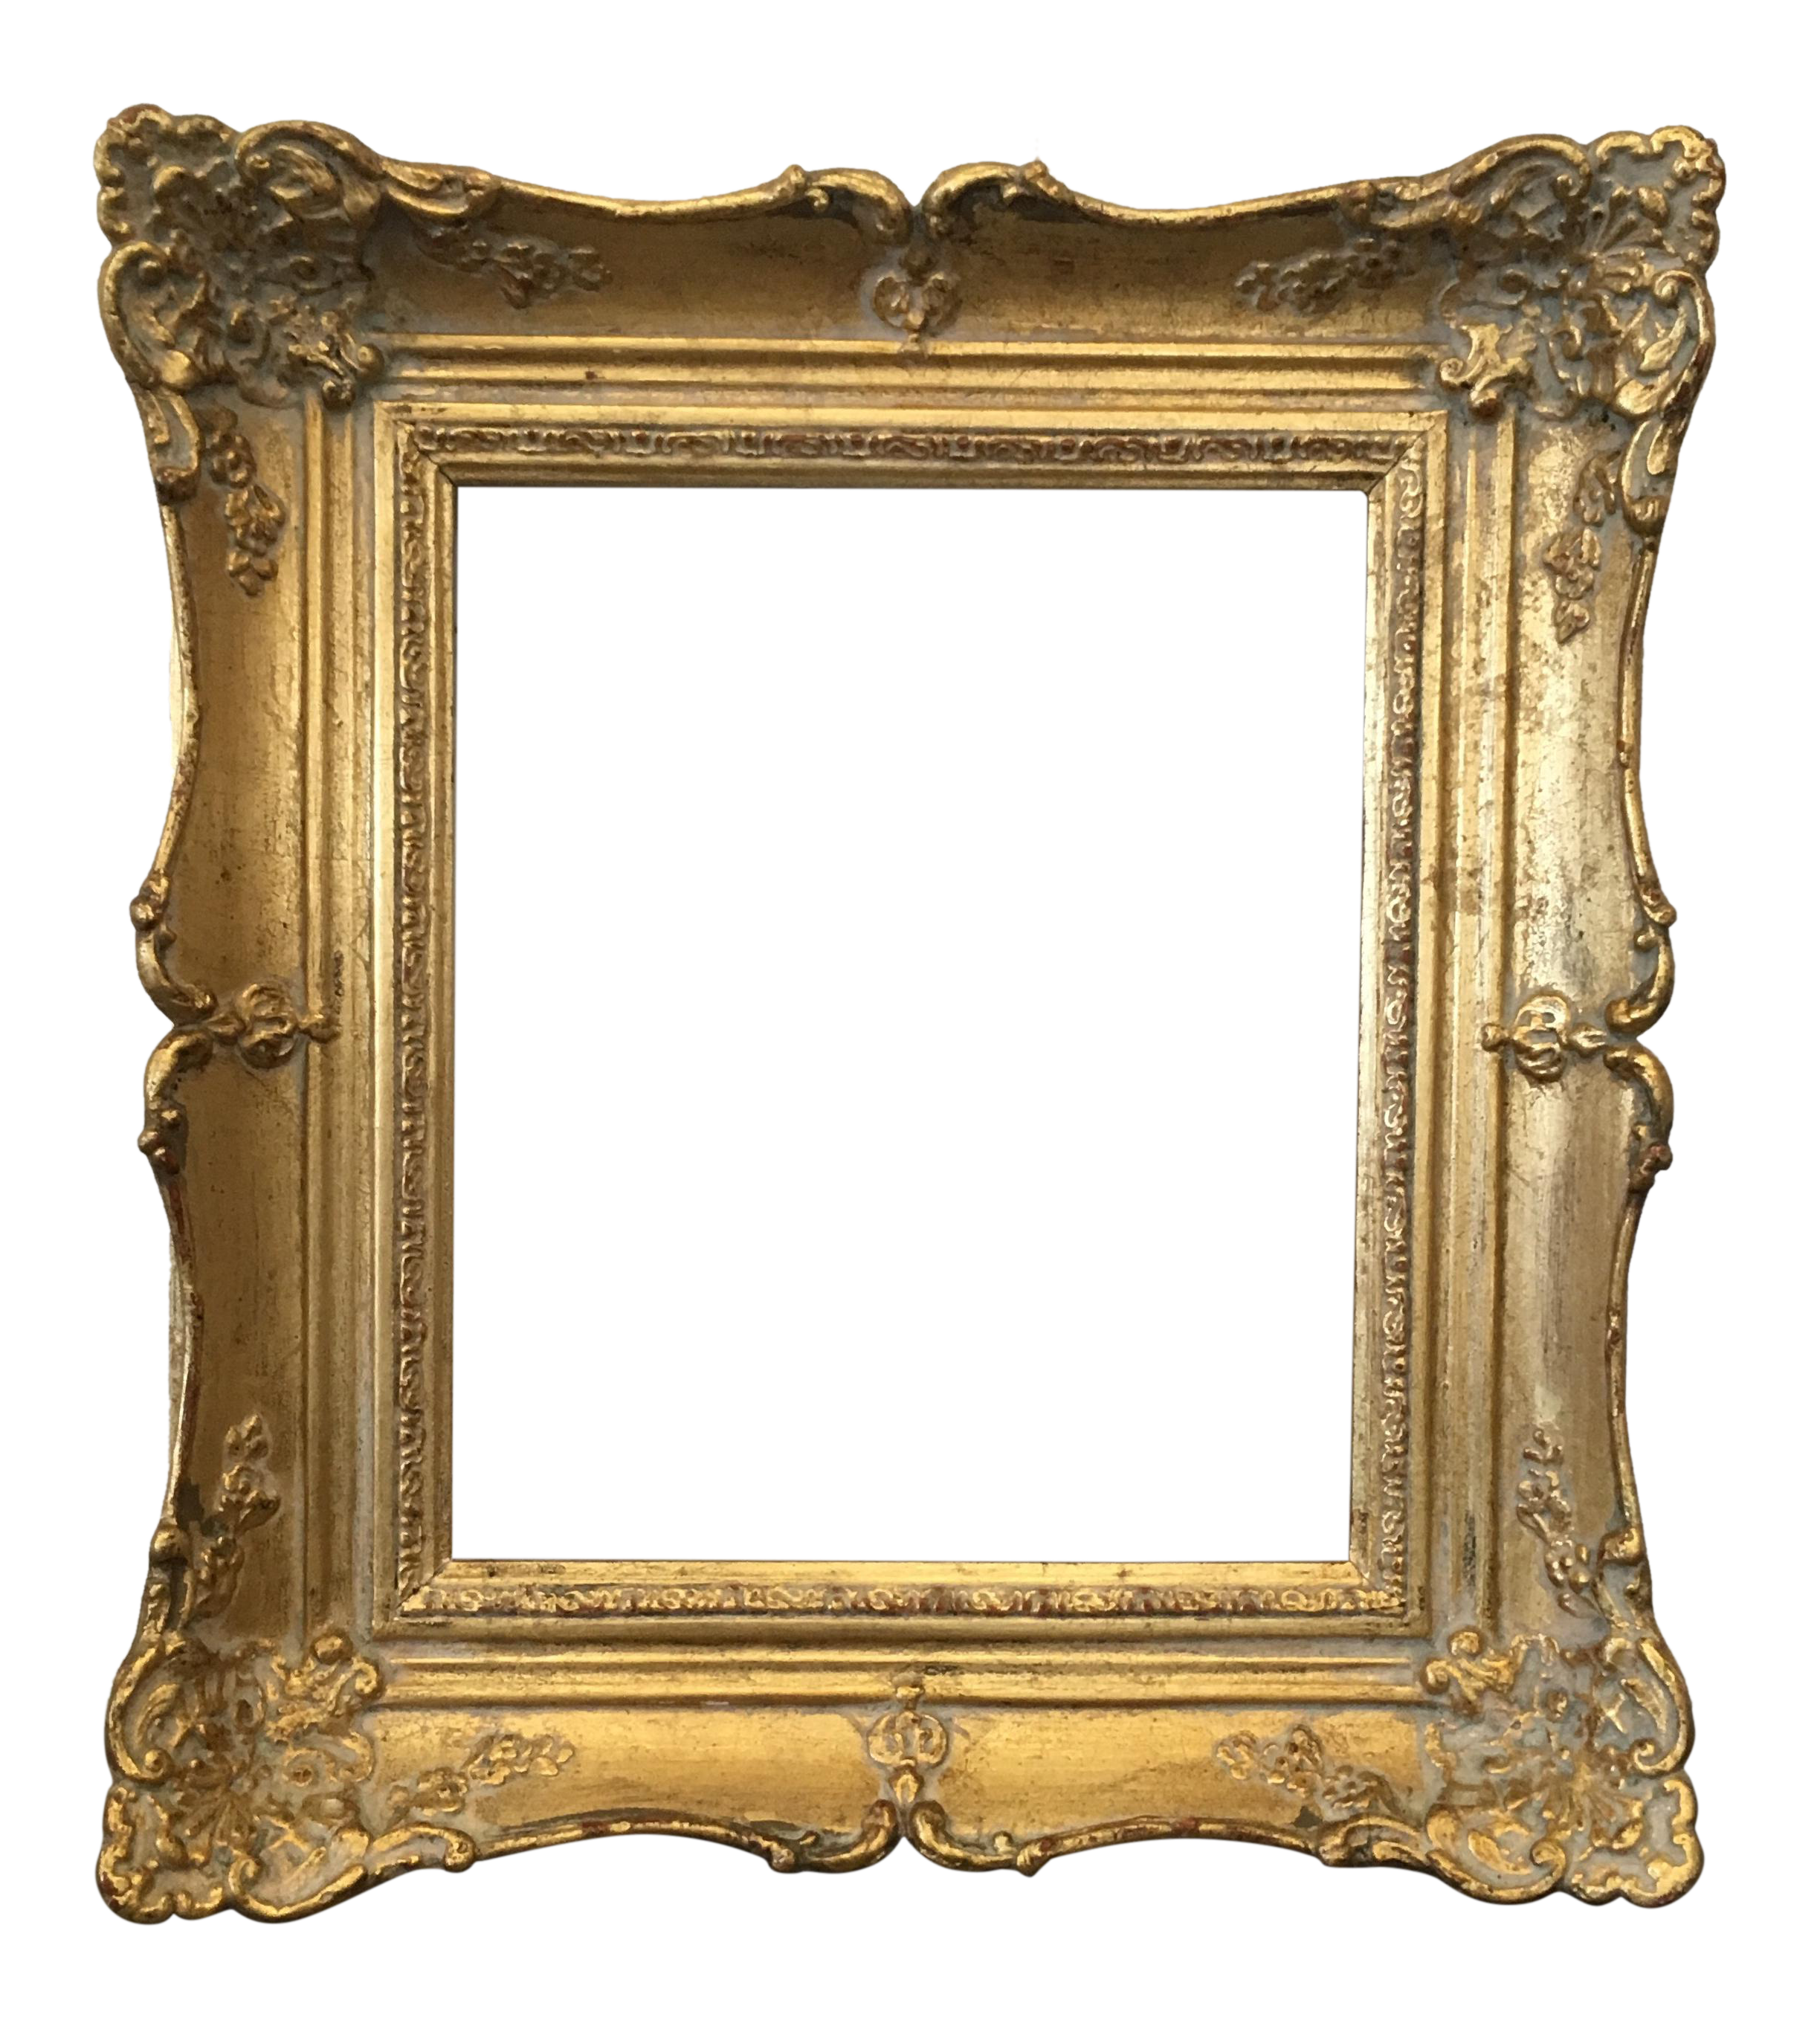 Vintage wood frame png. Gold carved chairish